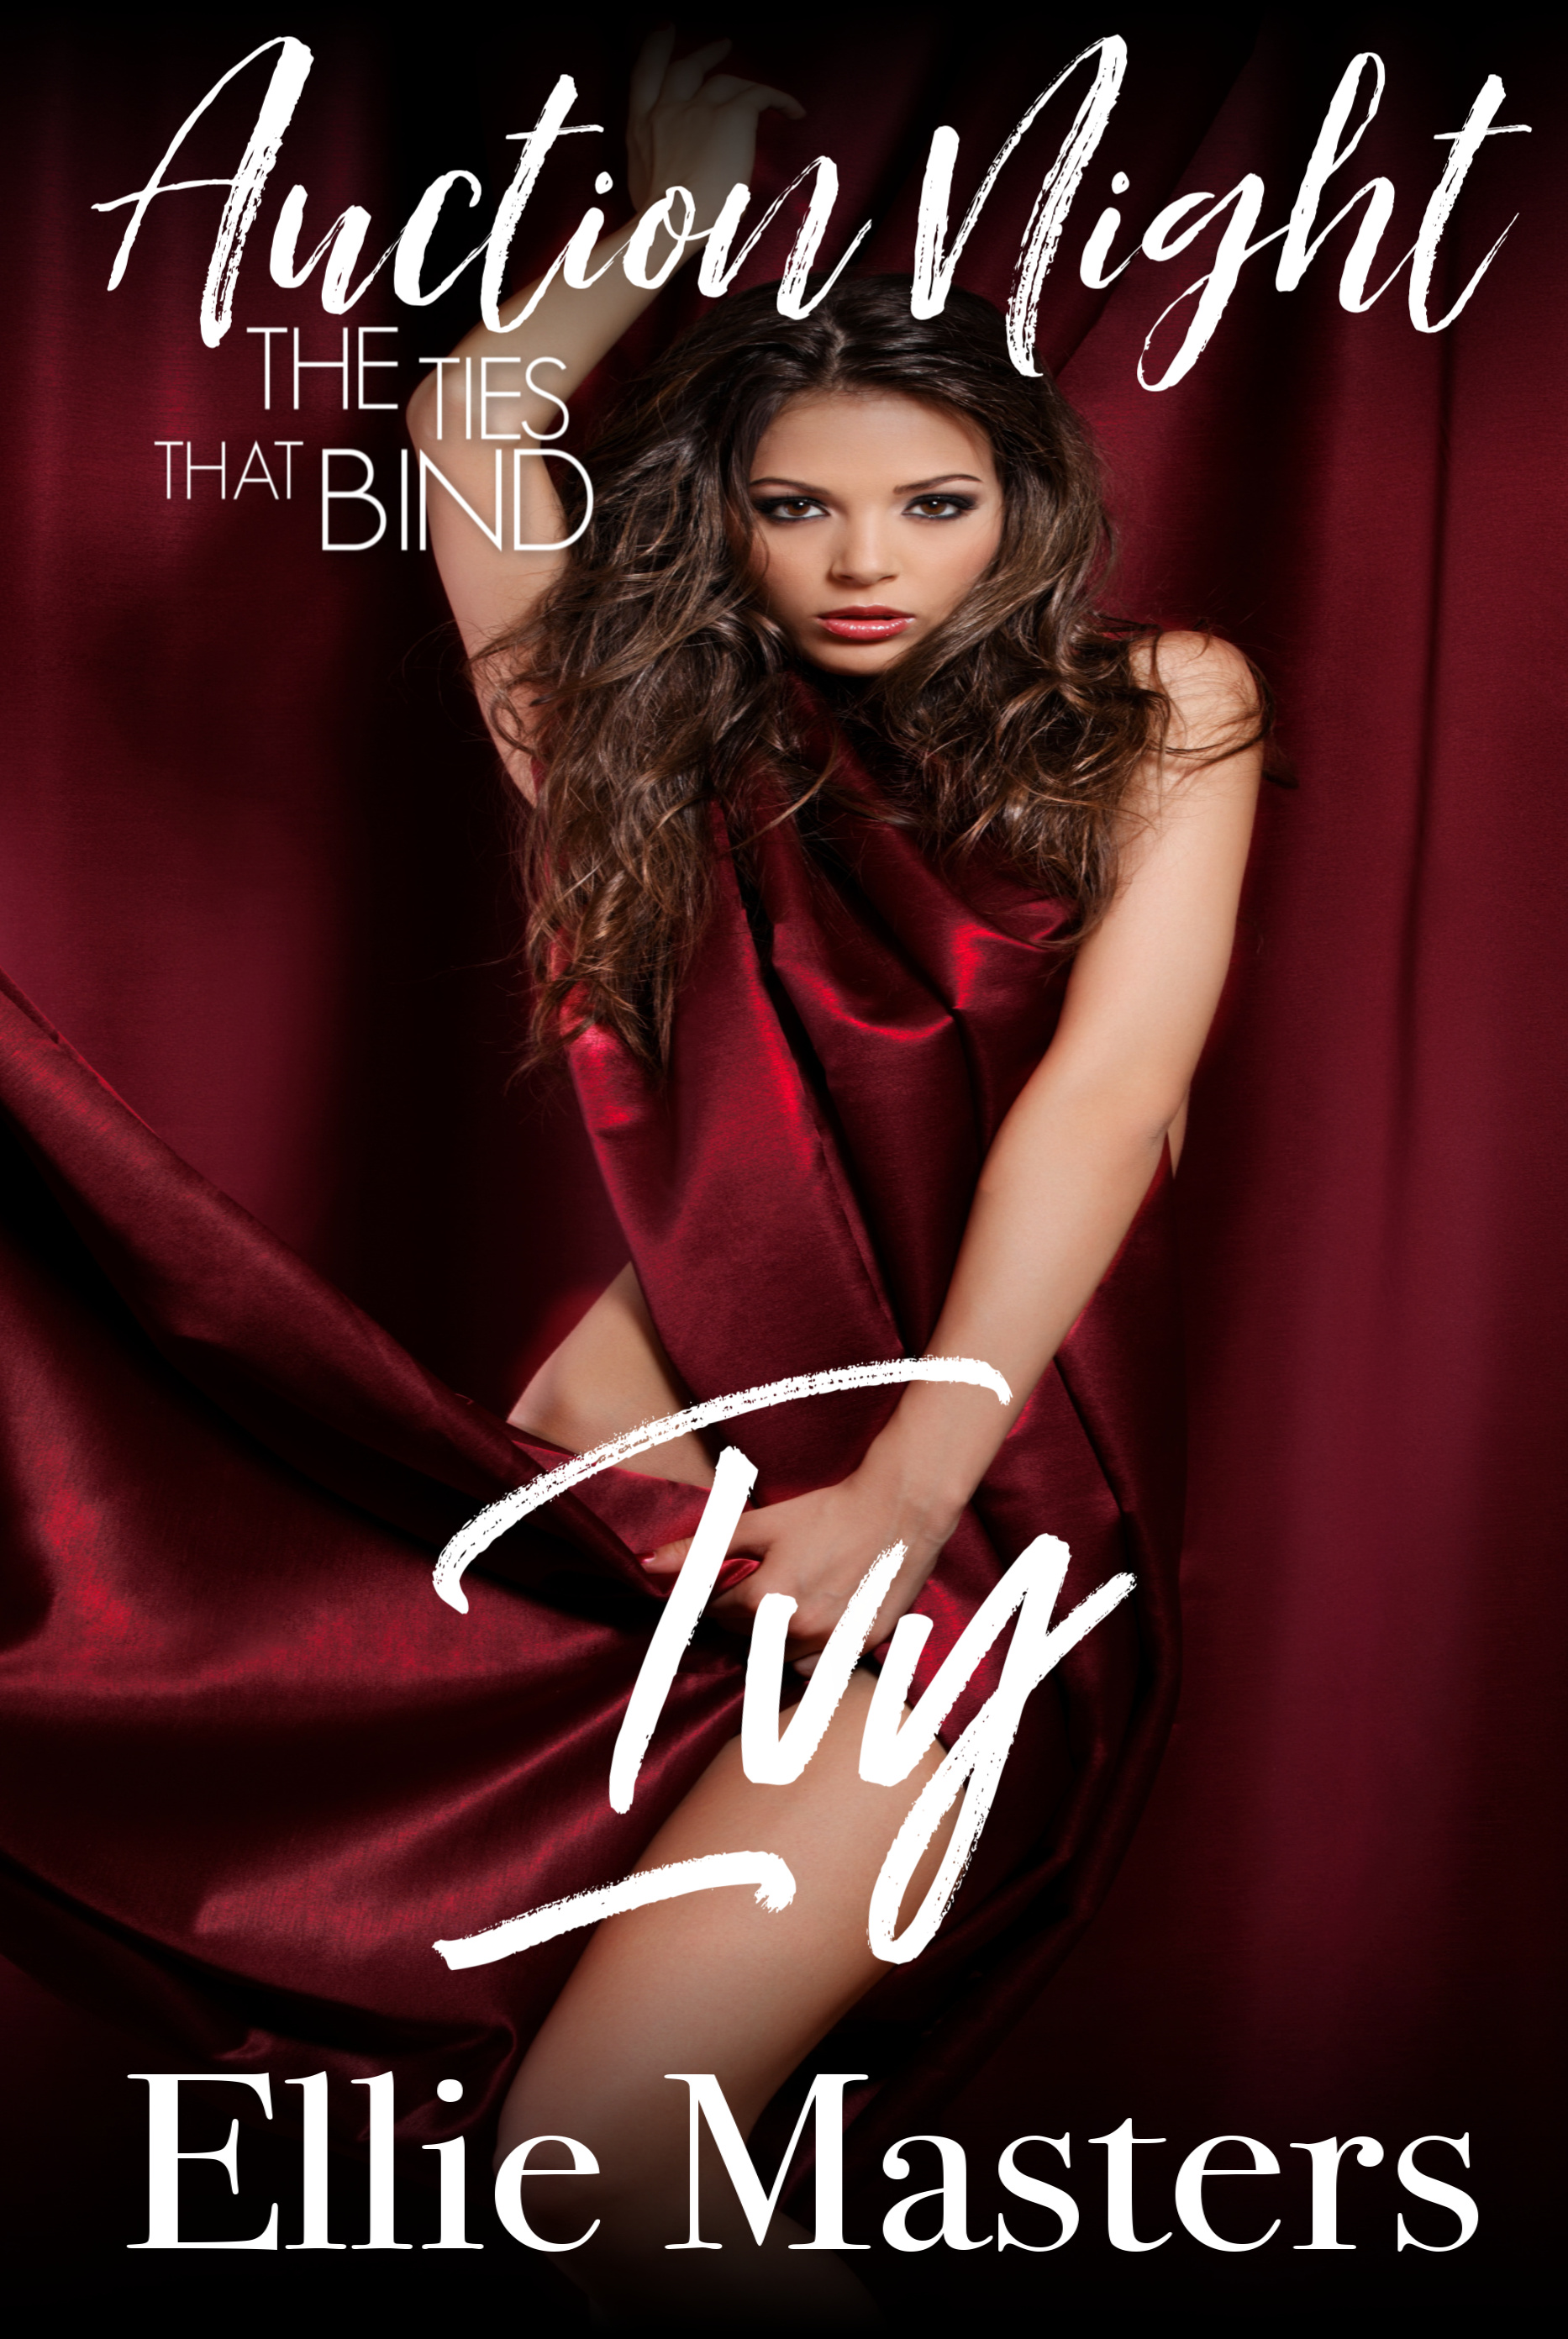 Ivy: The Ties that Bind (Auction Night, #4) Ellie Masters